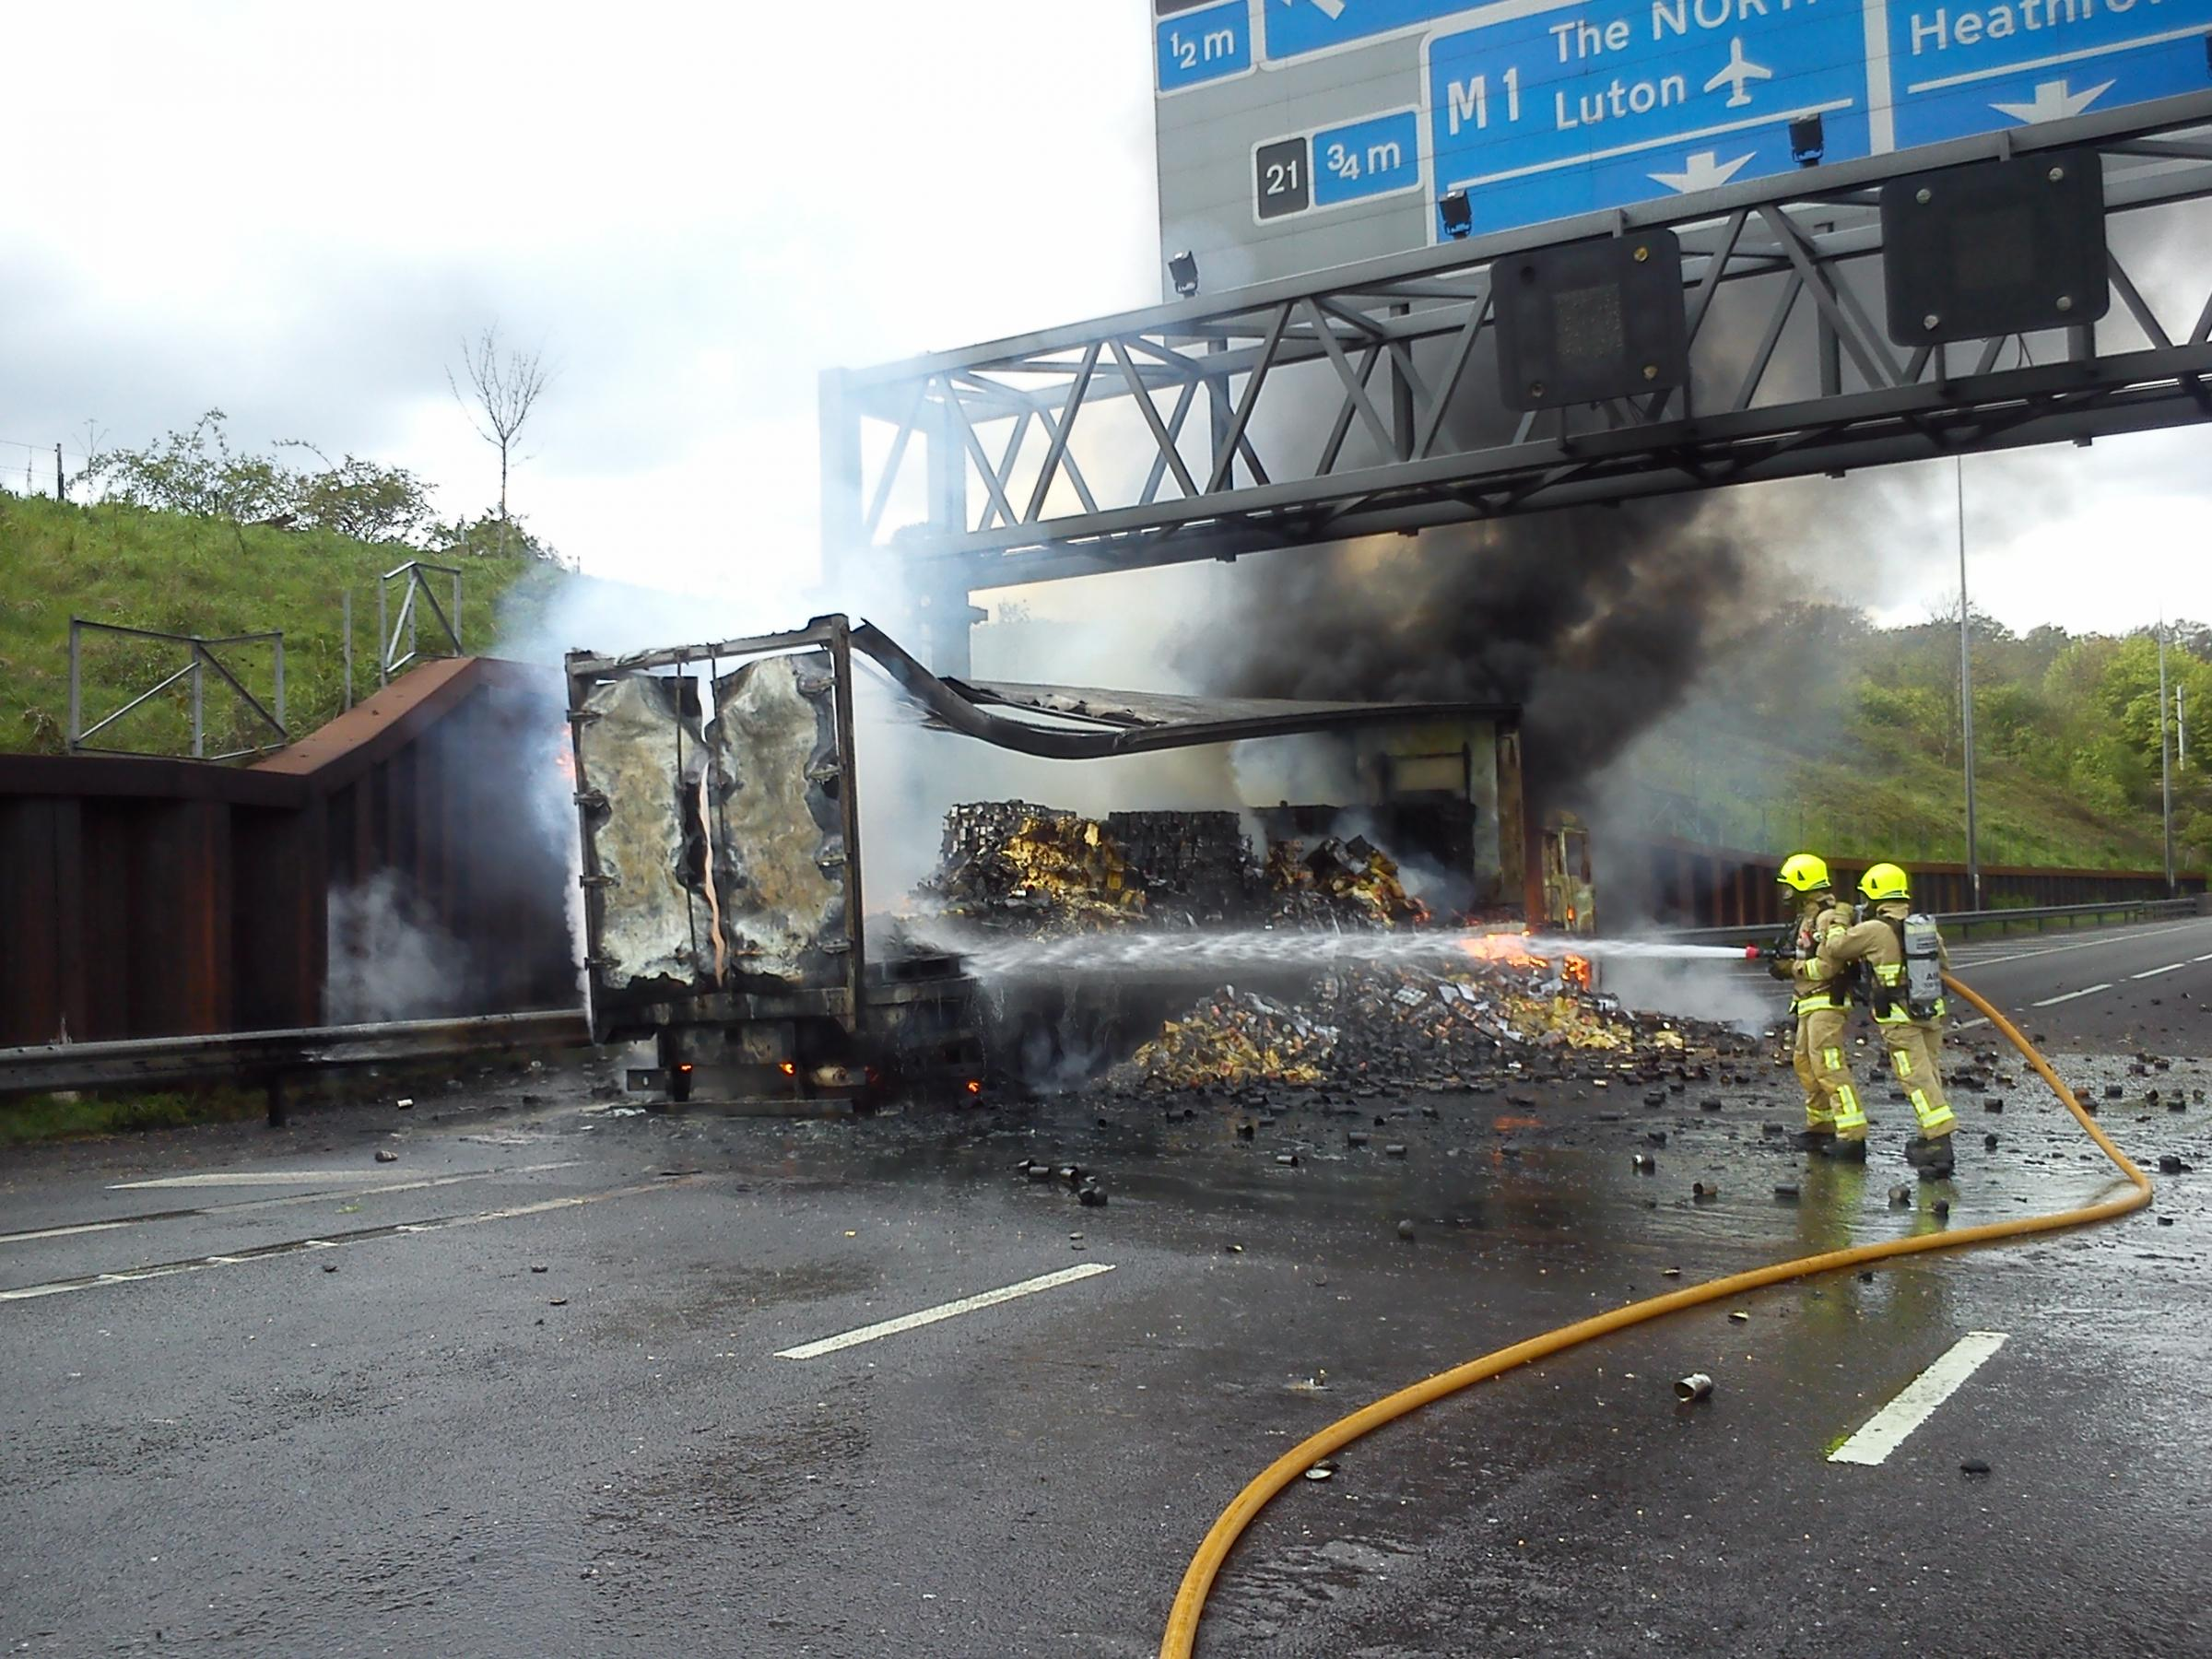 Fruit and veg explodes in M25 lorry fire